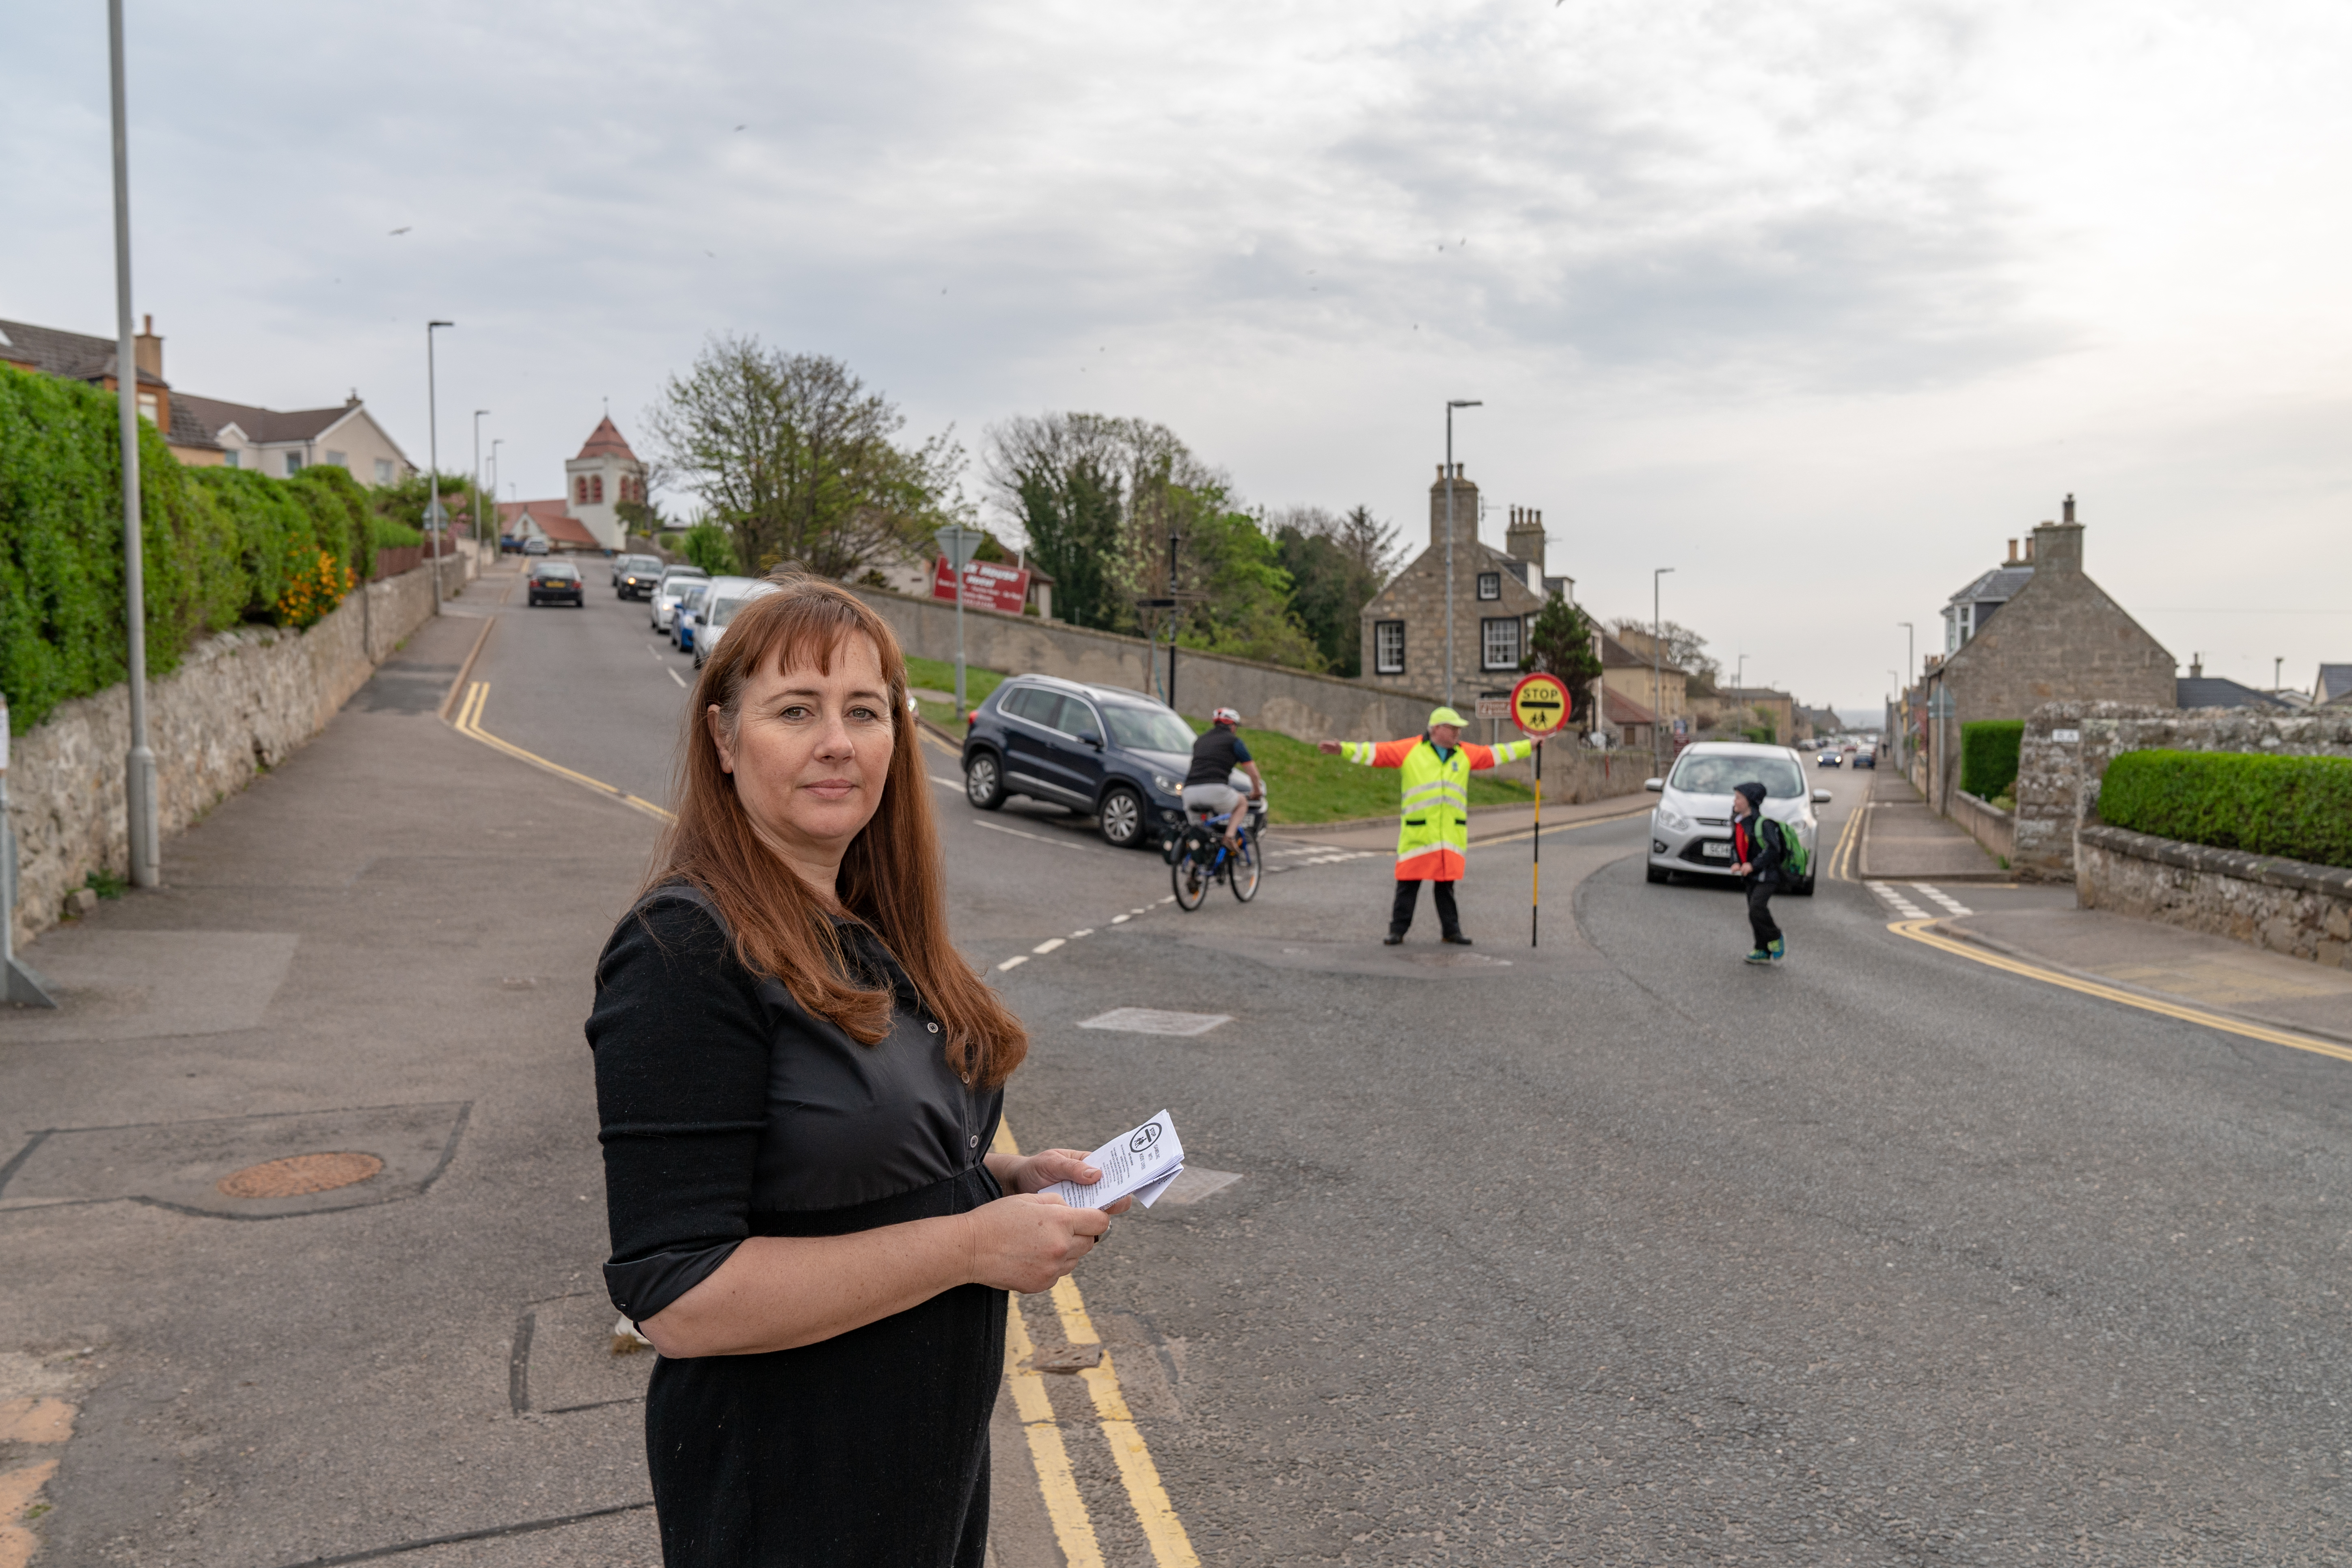 Amanda Nasser, chairwoman of St Gerardine Primary School's parent council, at the School Brae junction in Lossiemouth.